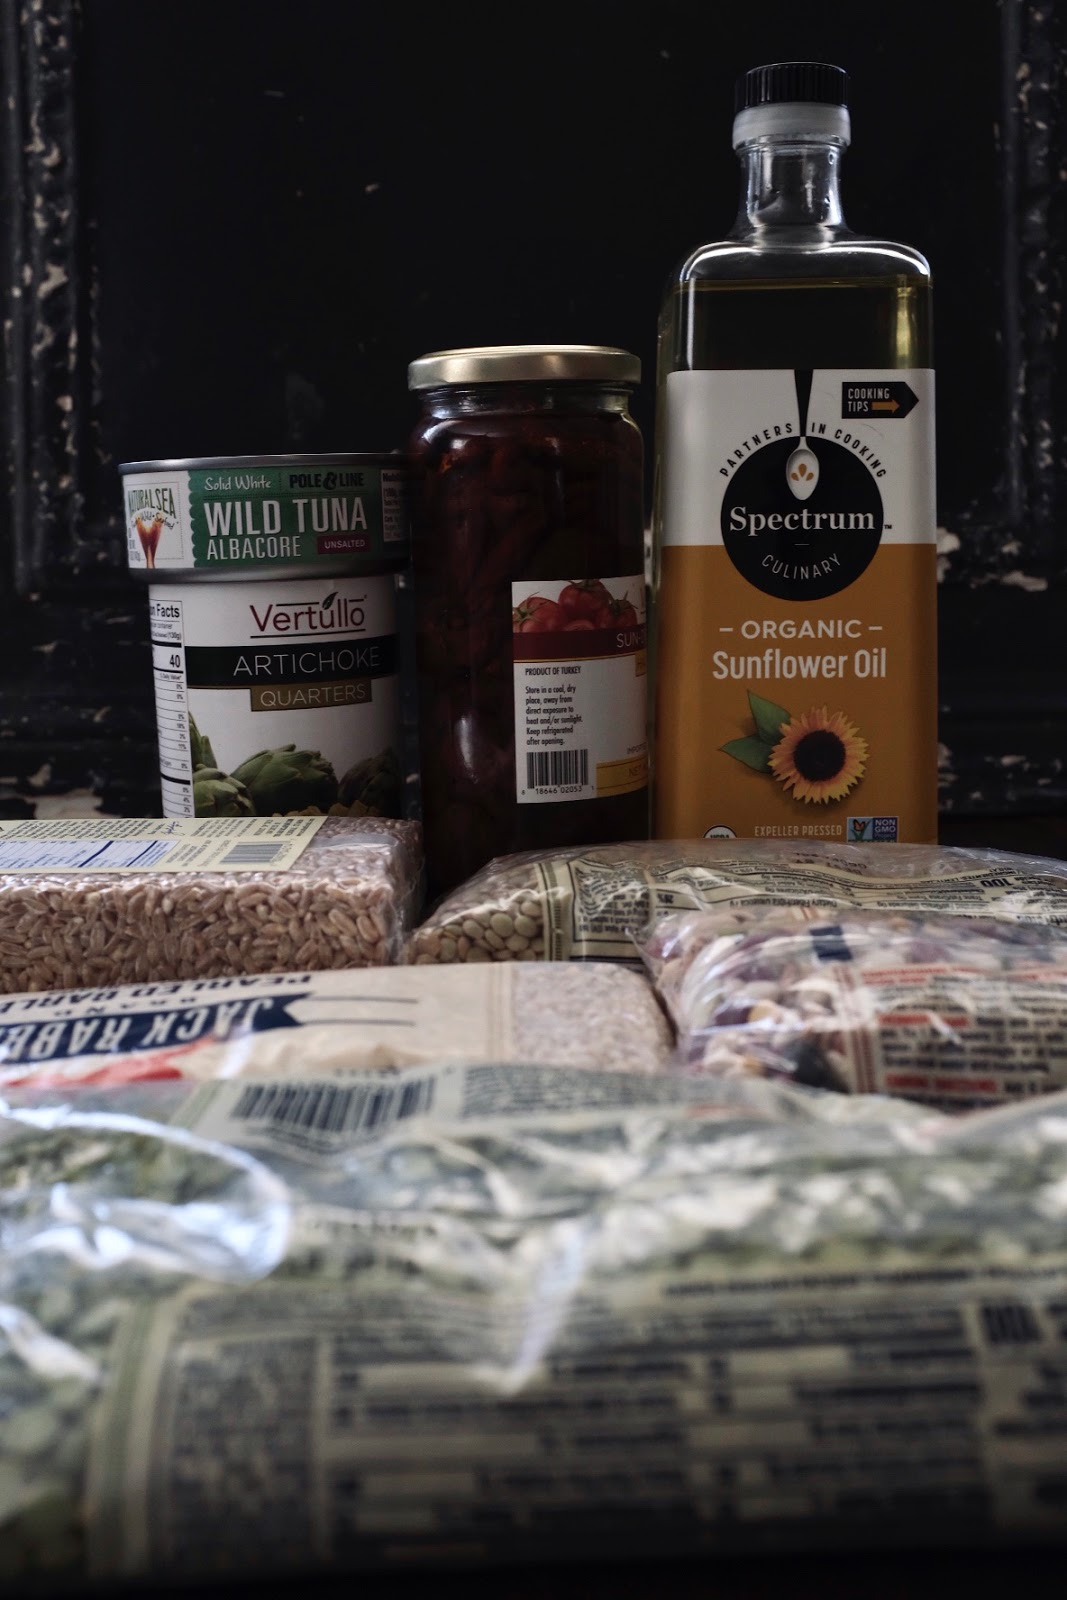 Stock your pantry with items like canned tuna, dried beans, grains, oil | Local Food Rocks